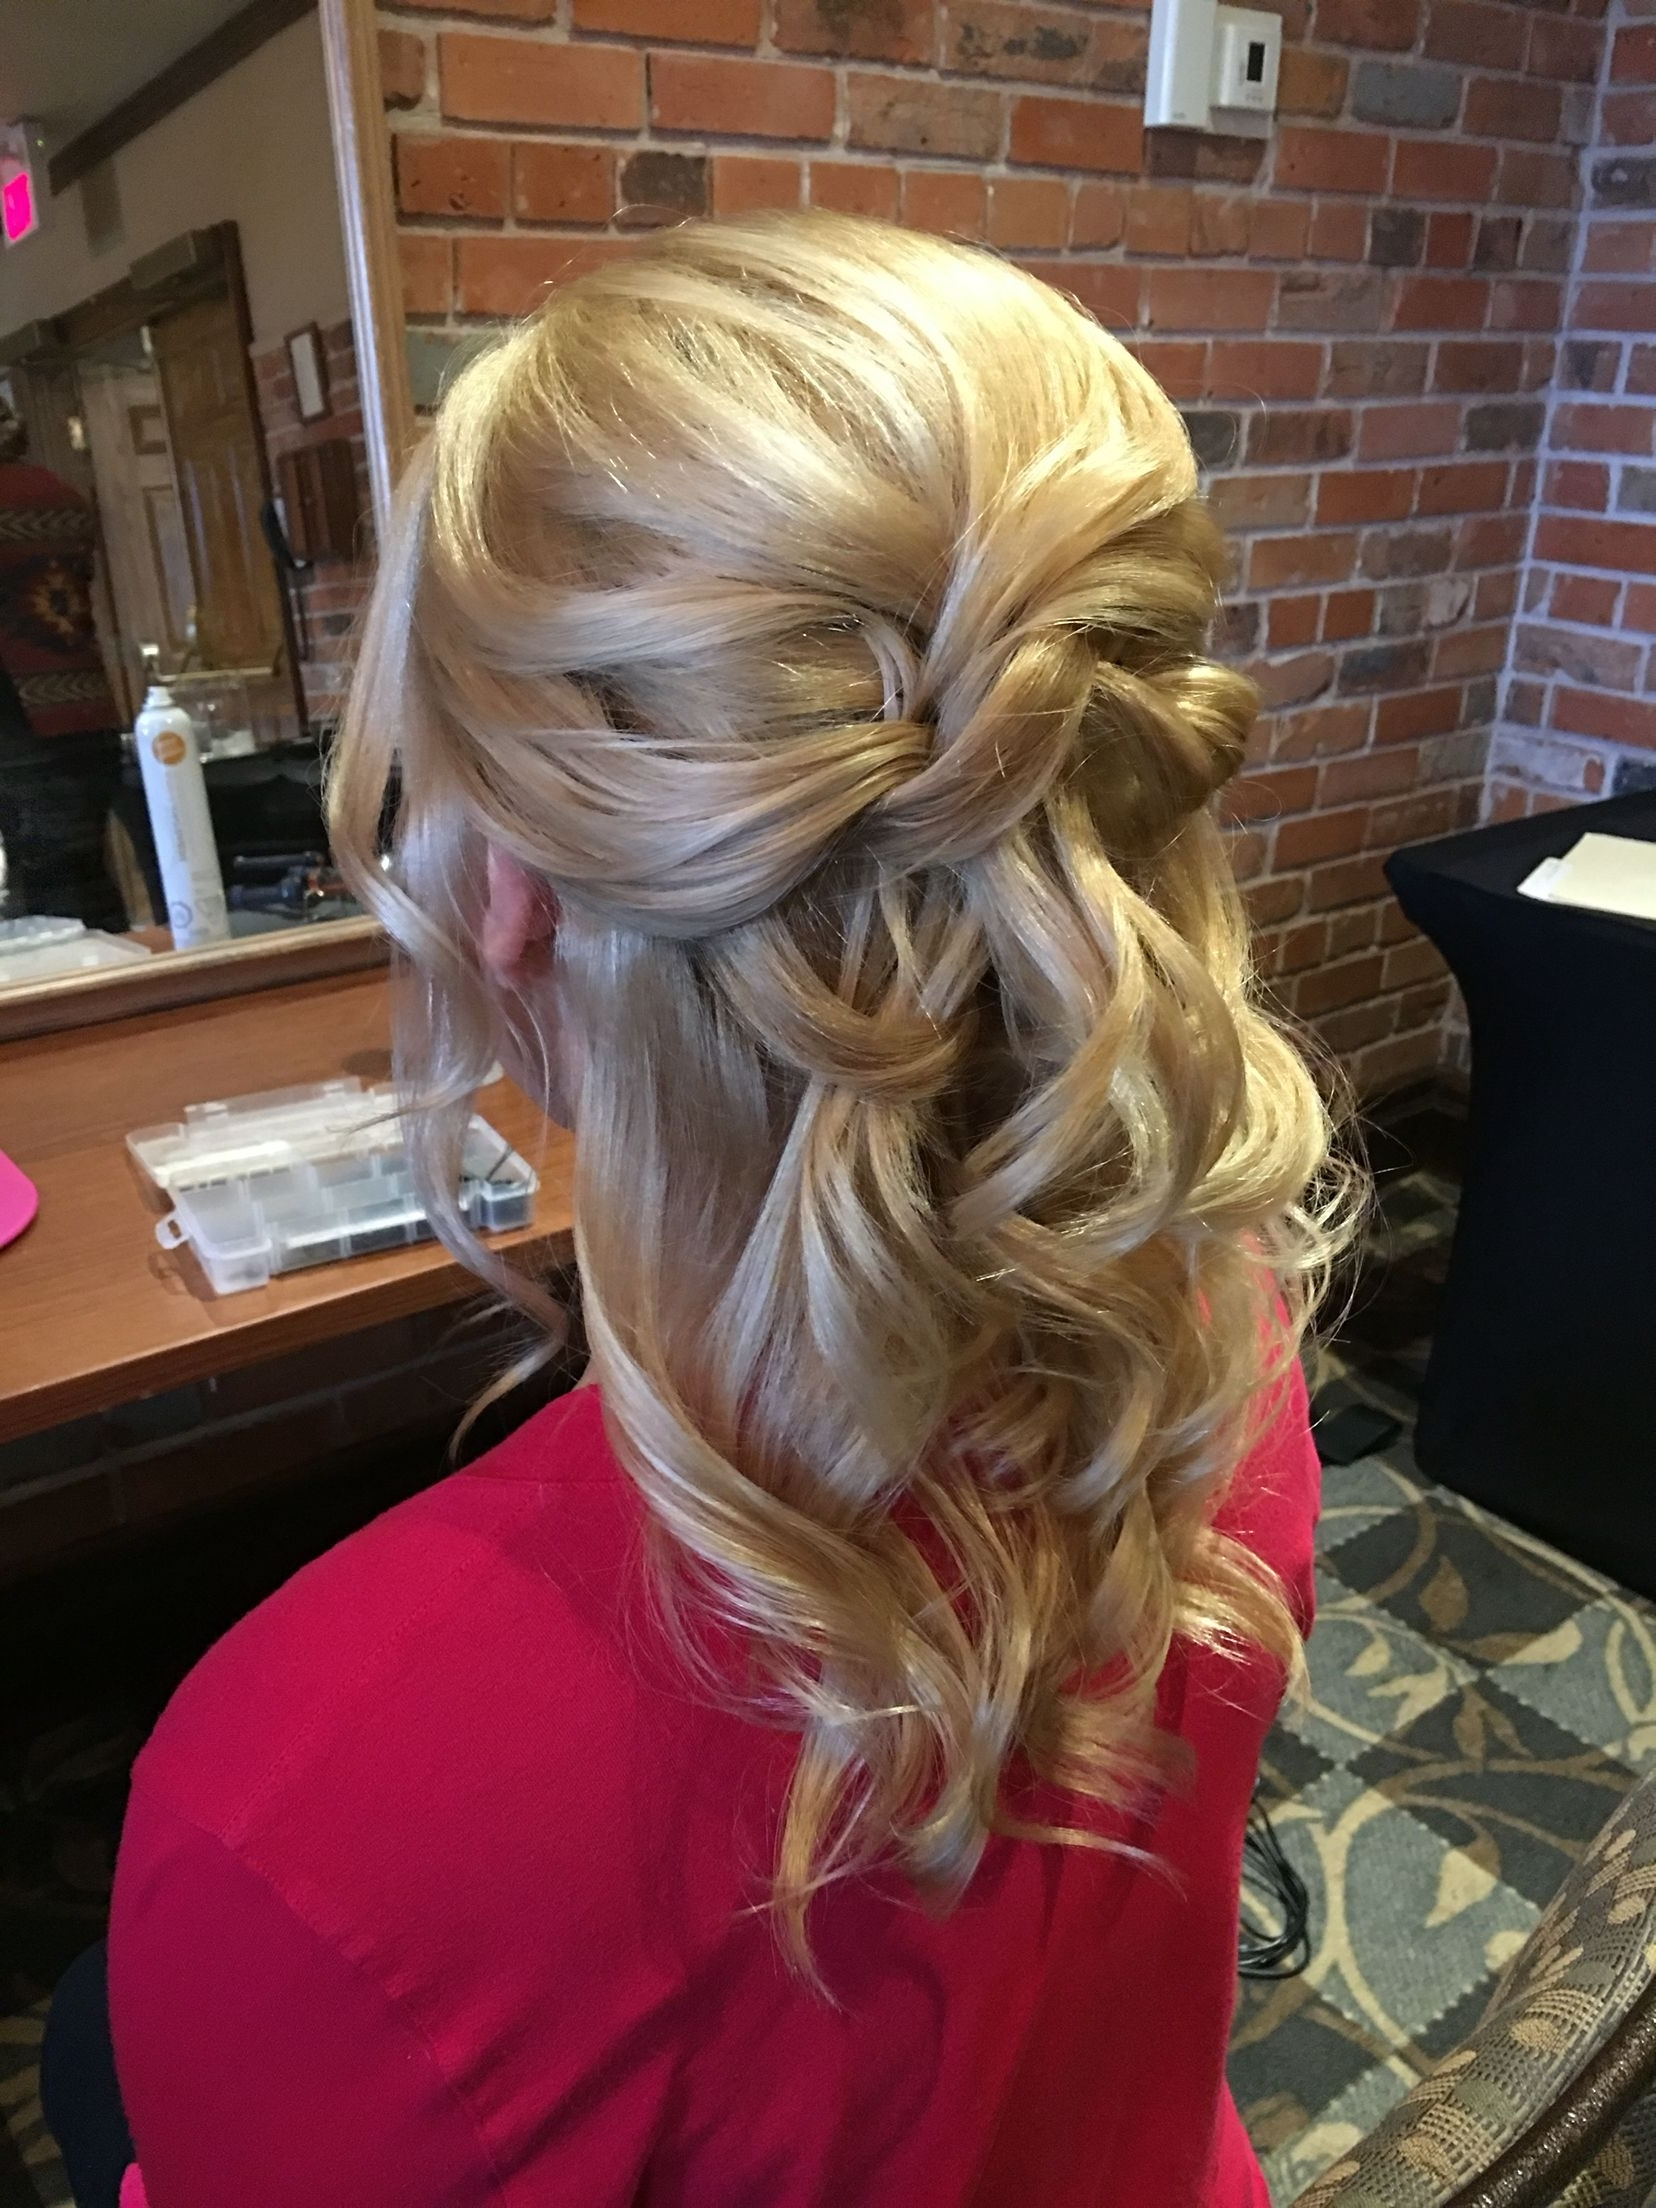 Most Recent Mother Of Bride Wedding Hairstyles Regarding Half Up Half Down Wedding Hair For Bride Or Mother Of The Bride (View 10 of 15)